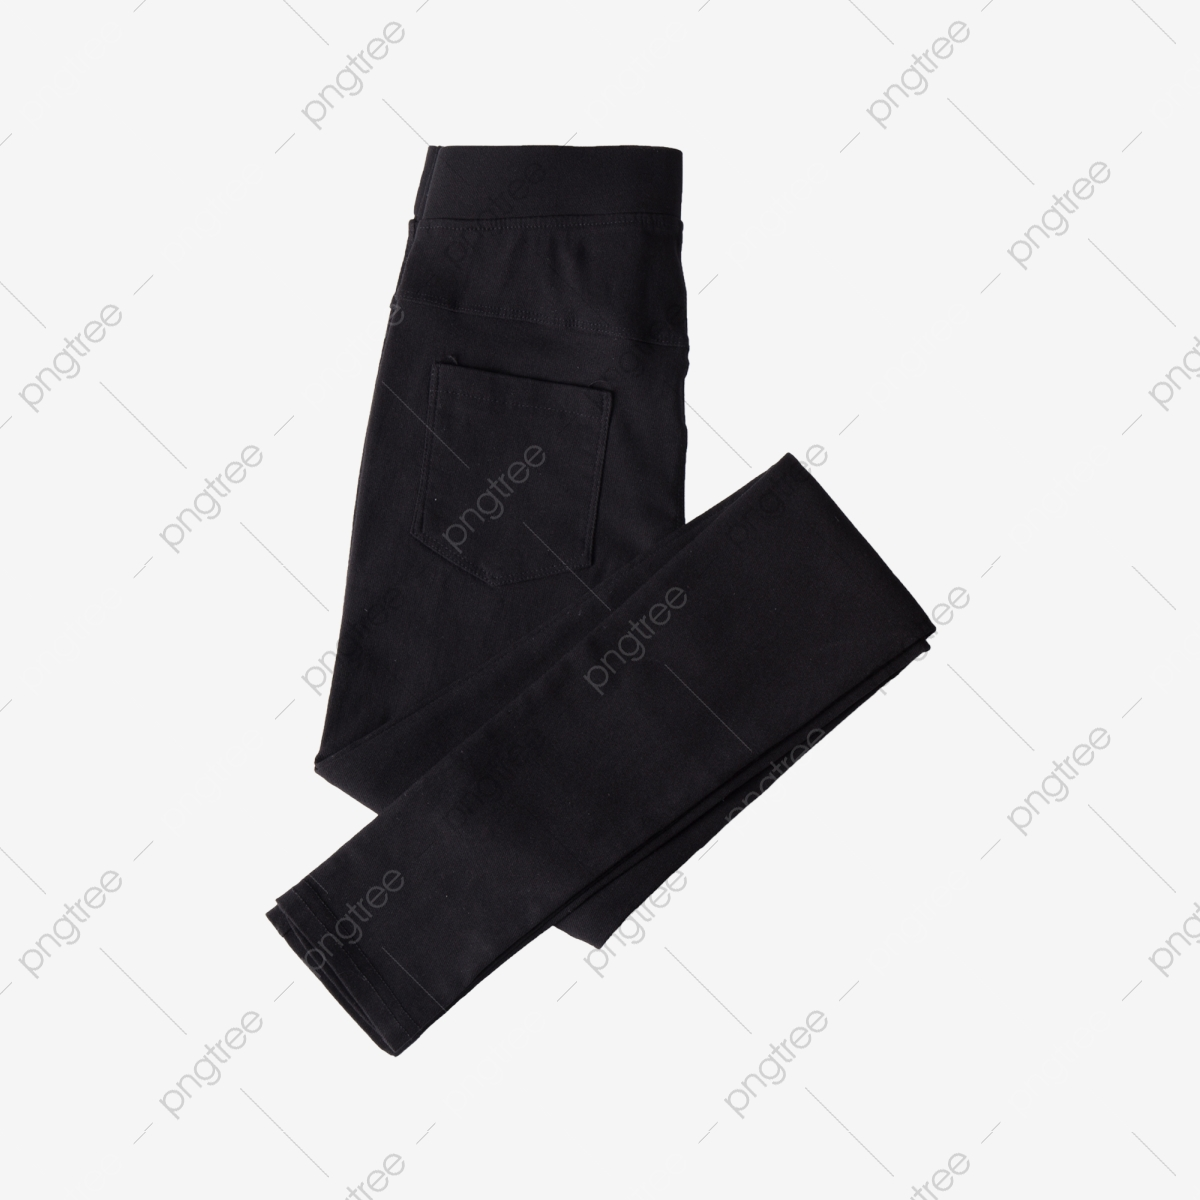 A Black Tight Leggings A Pair Of Black Pants Folding Leggings Png Transparent Clipart Image And Psd File For Free Download